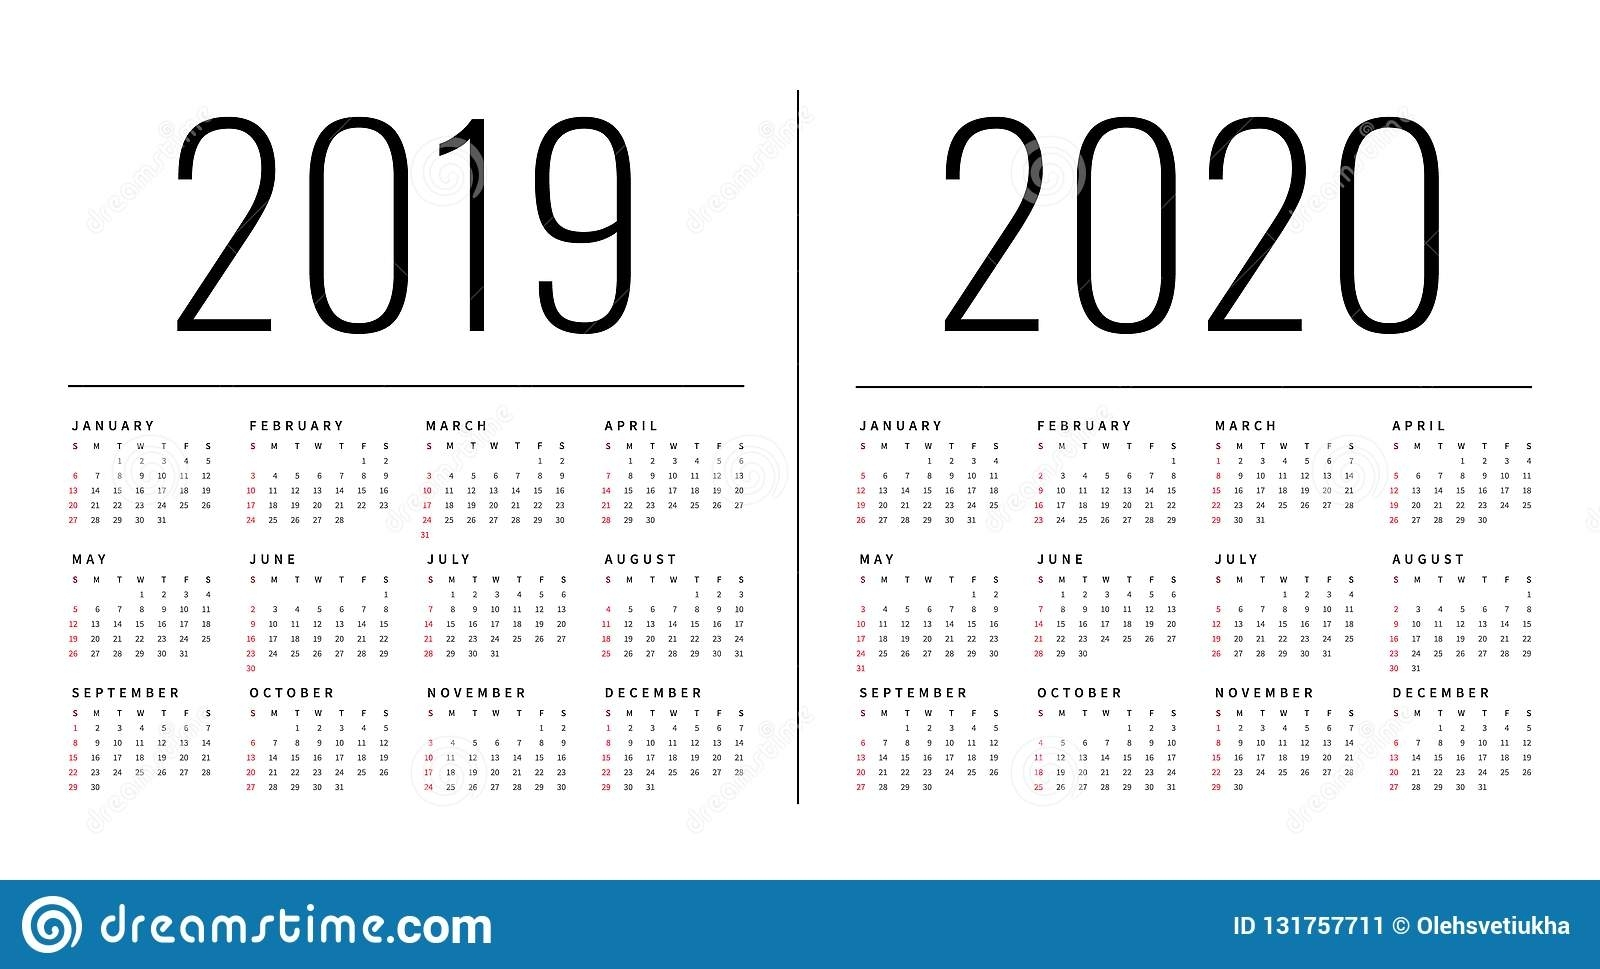 Mockup Simple Calendar Layout For 2019 And 2020 Years. Week Starts with Calendar   July 2019 To June 2020